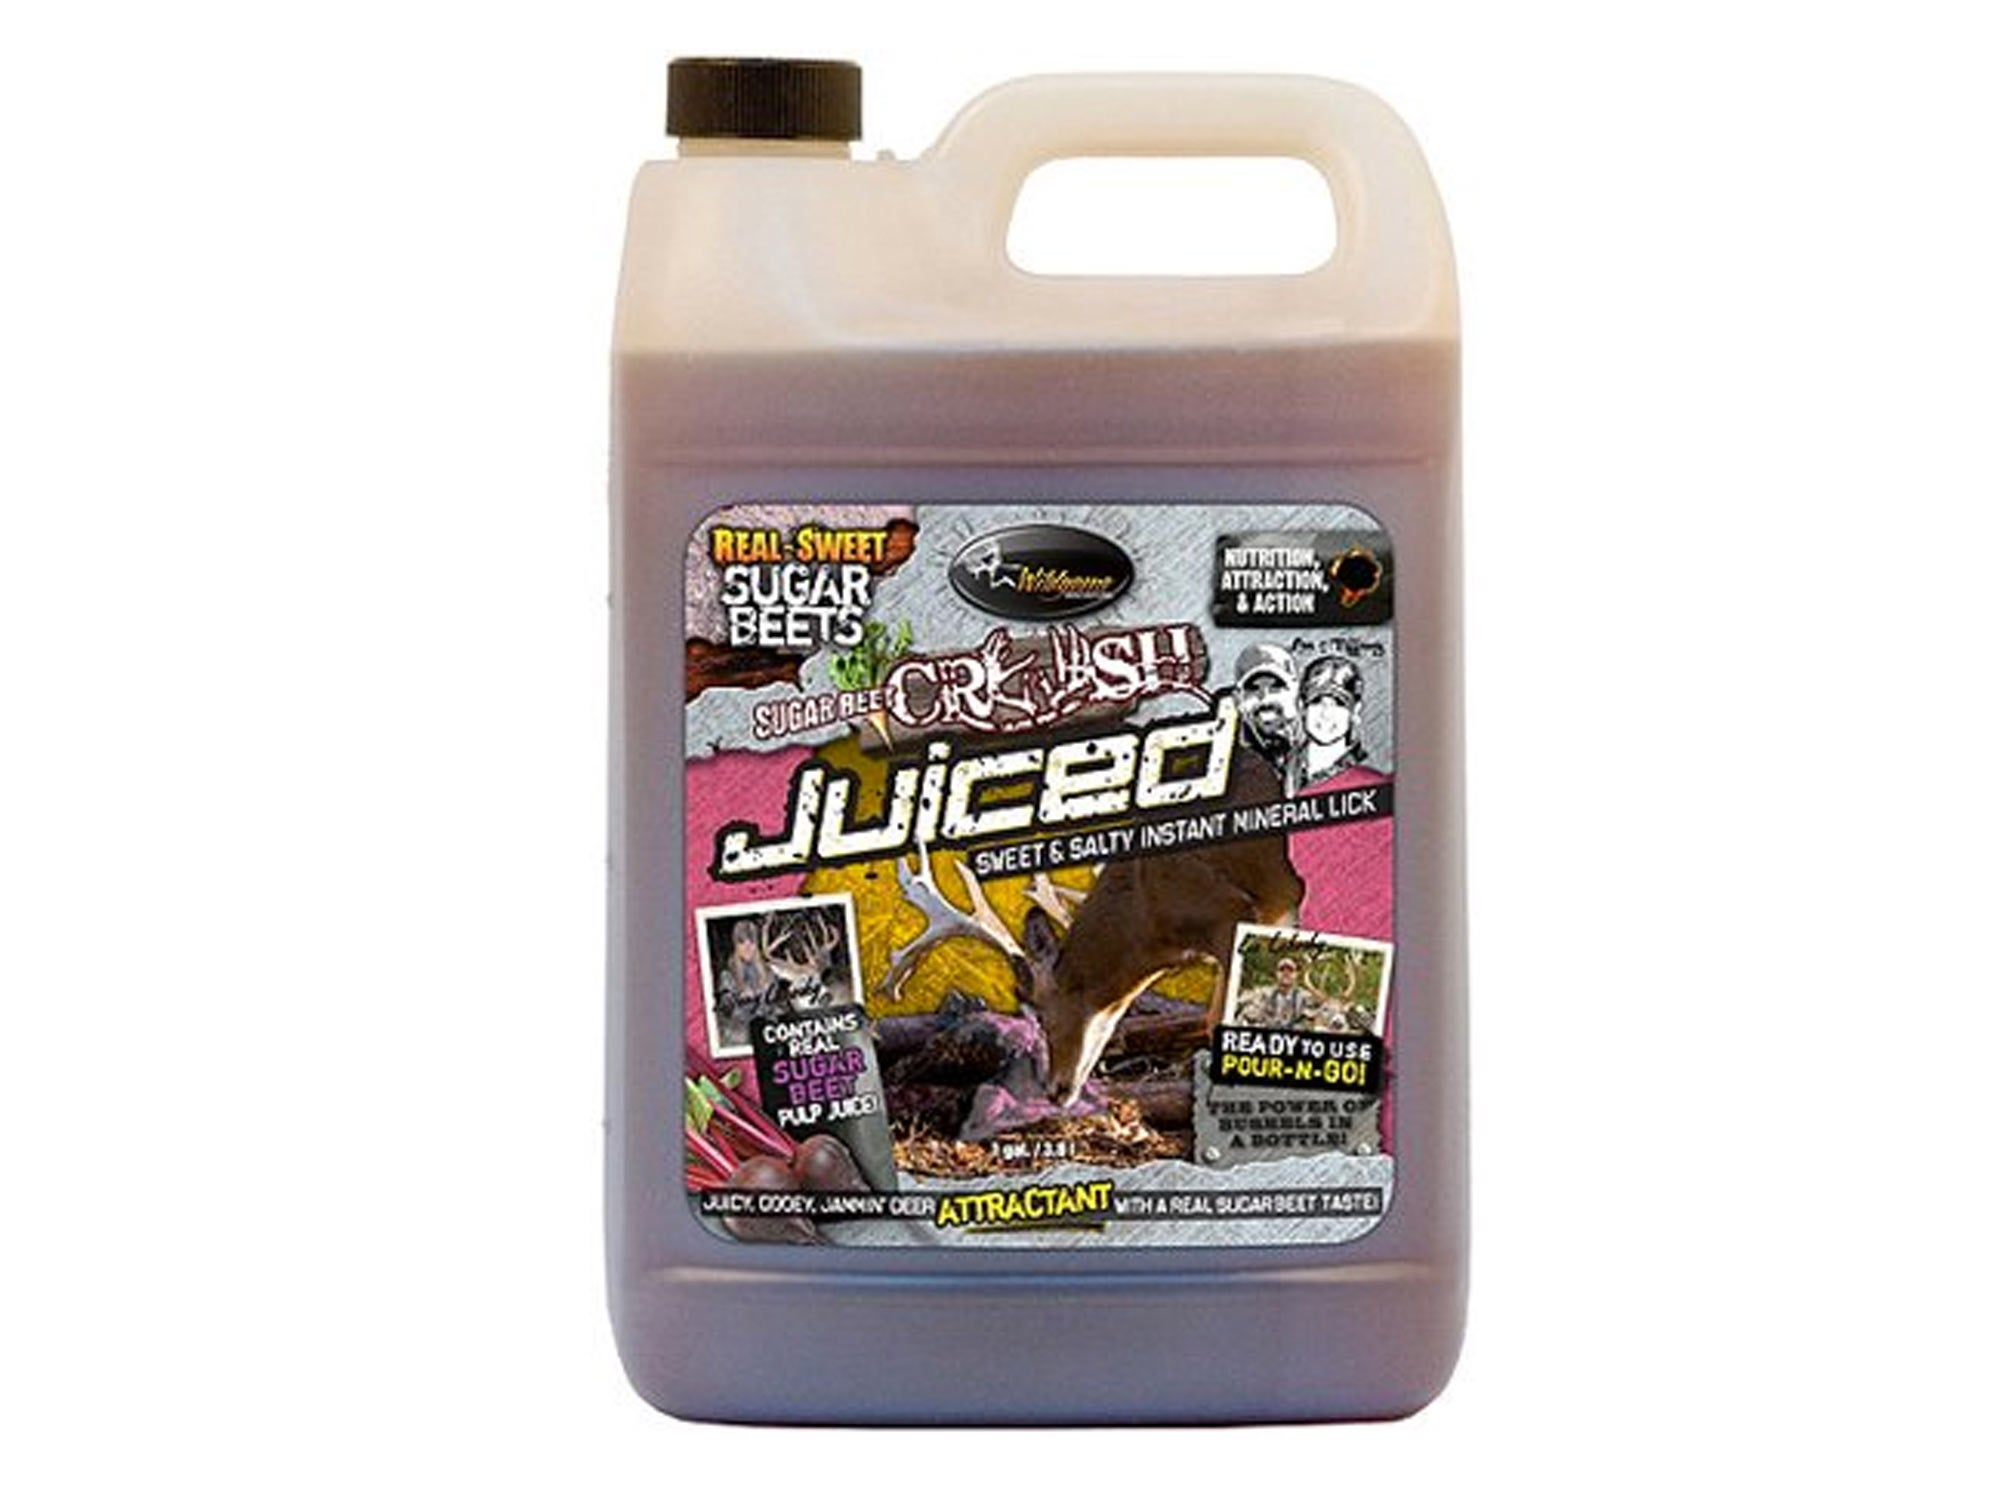 Sugar Beet Crushed Juiced attractant